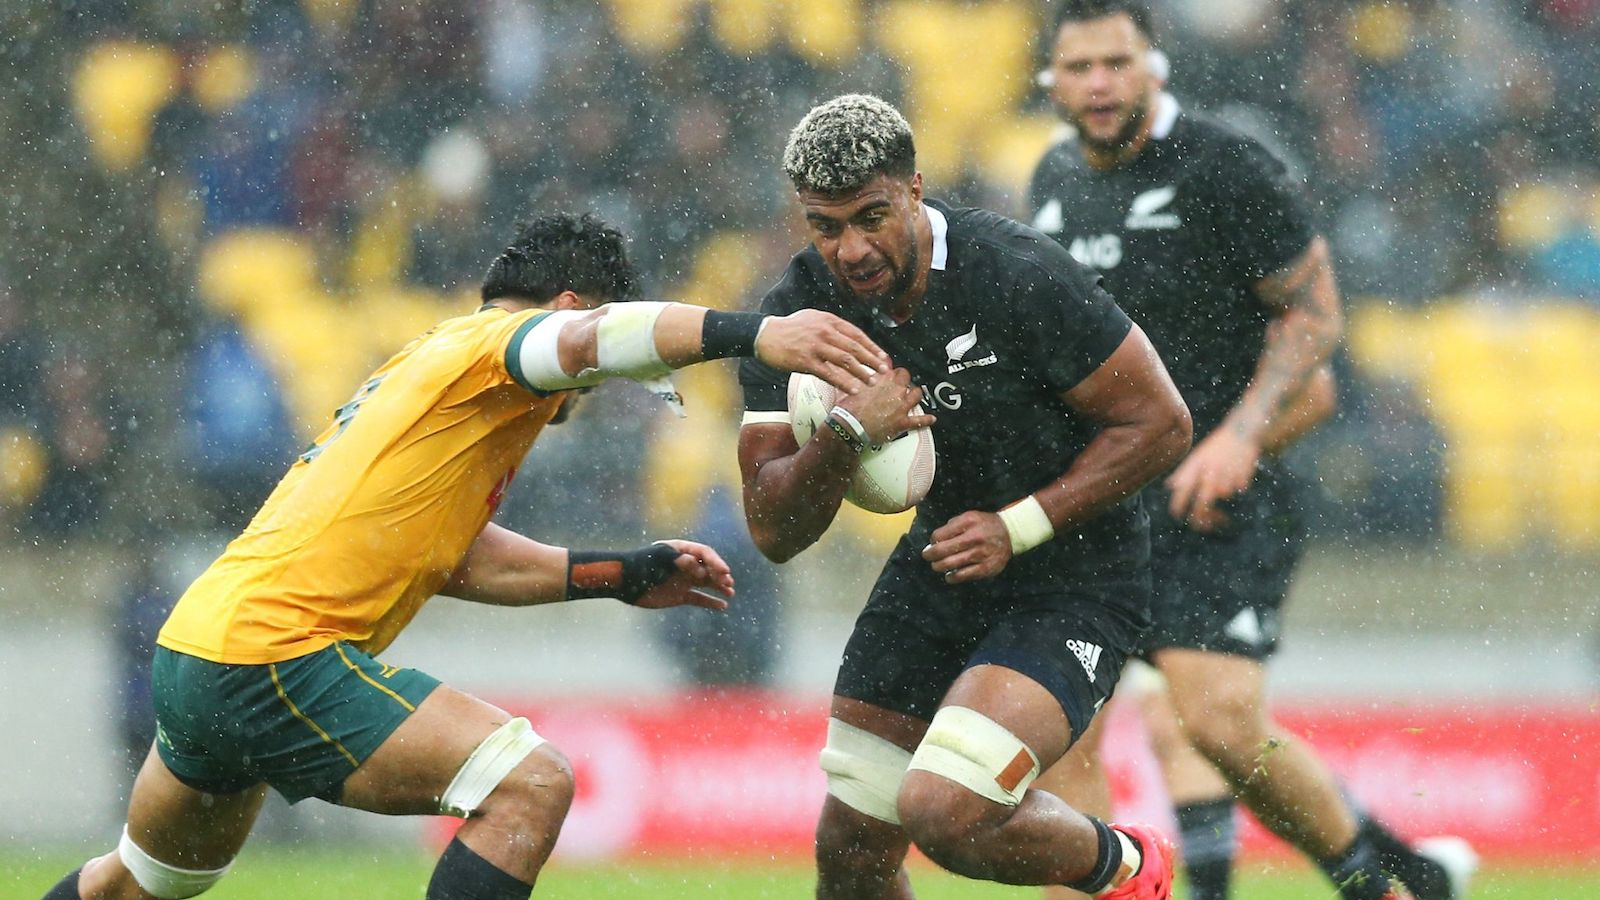 Australian rugby games will be live-streamed on STAN for